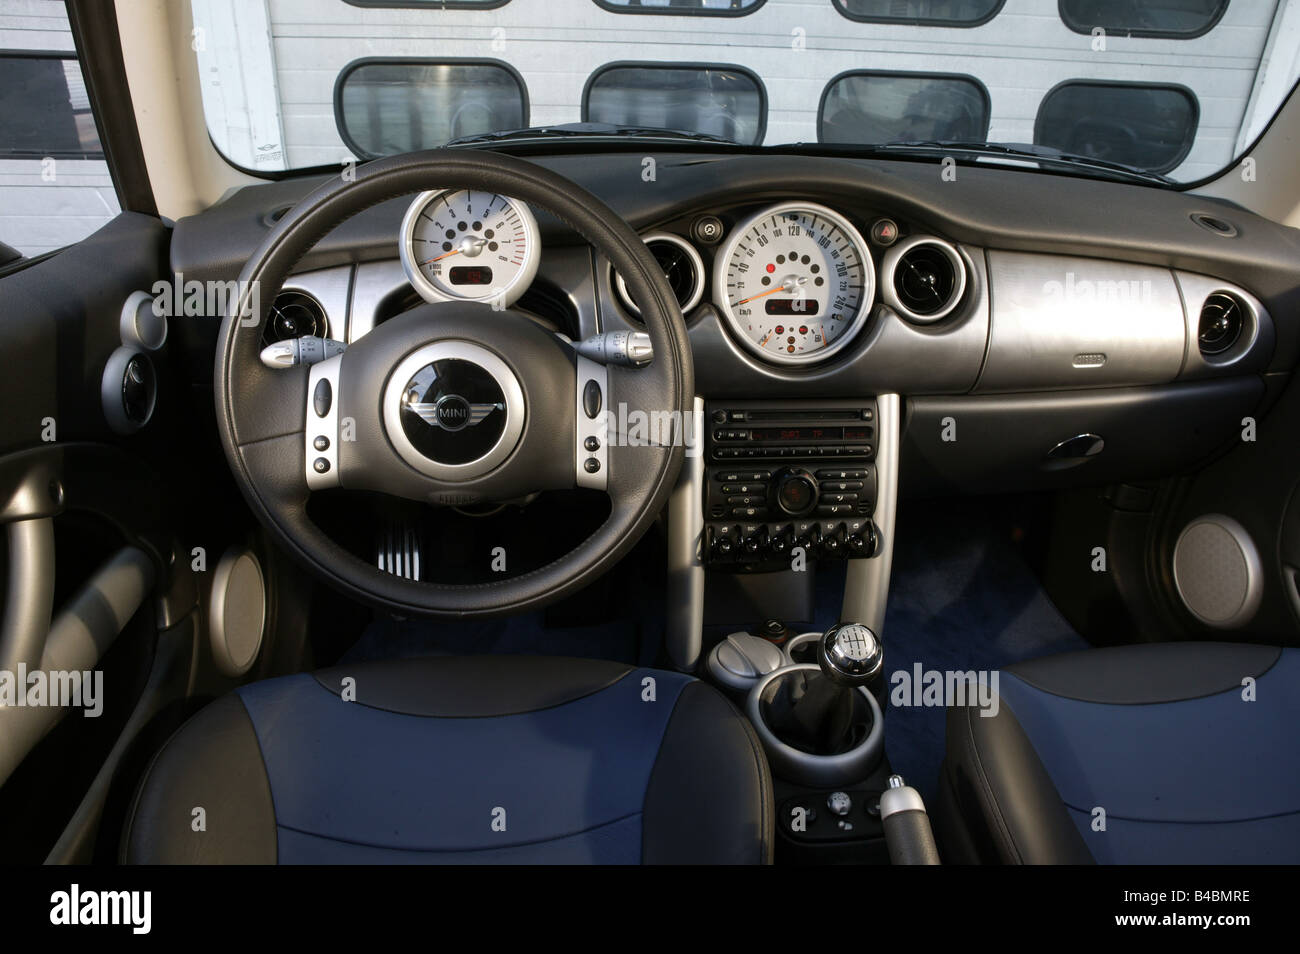 car bmw mini cooper s miniapprox s limousine model year 2002 stock photo 19926802 alamy. Black Bedroom Furniture Sets. Home Design Ideas